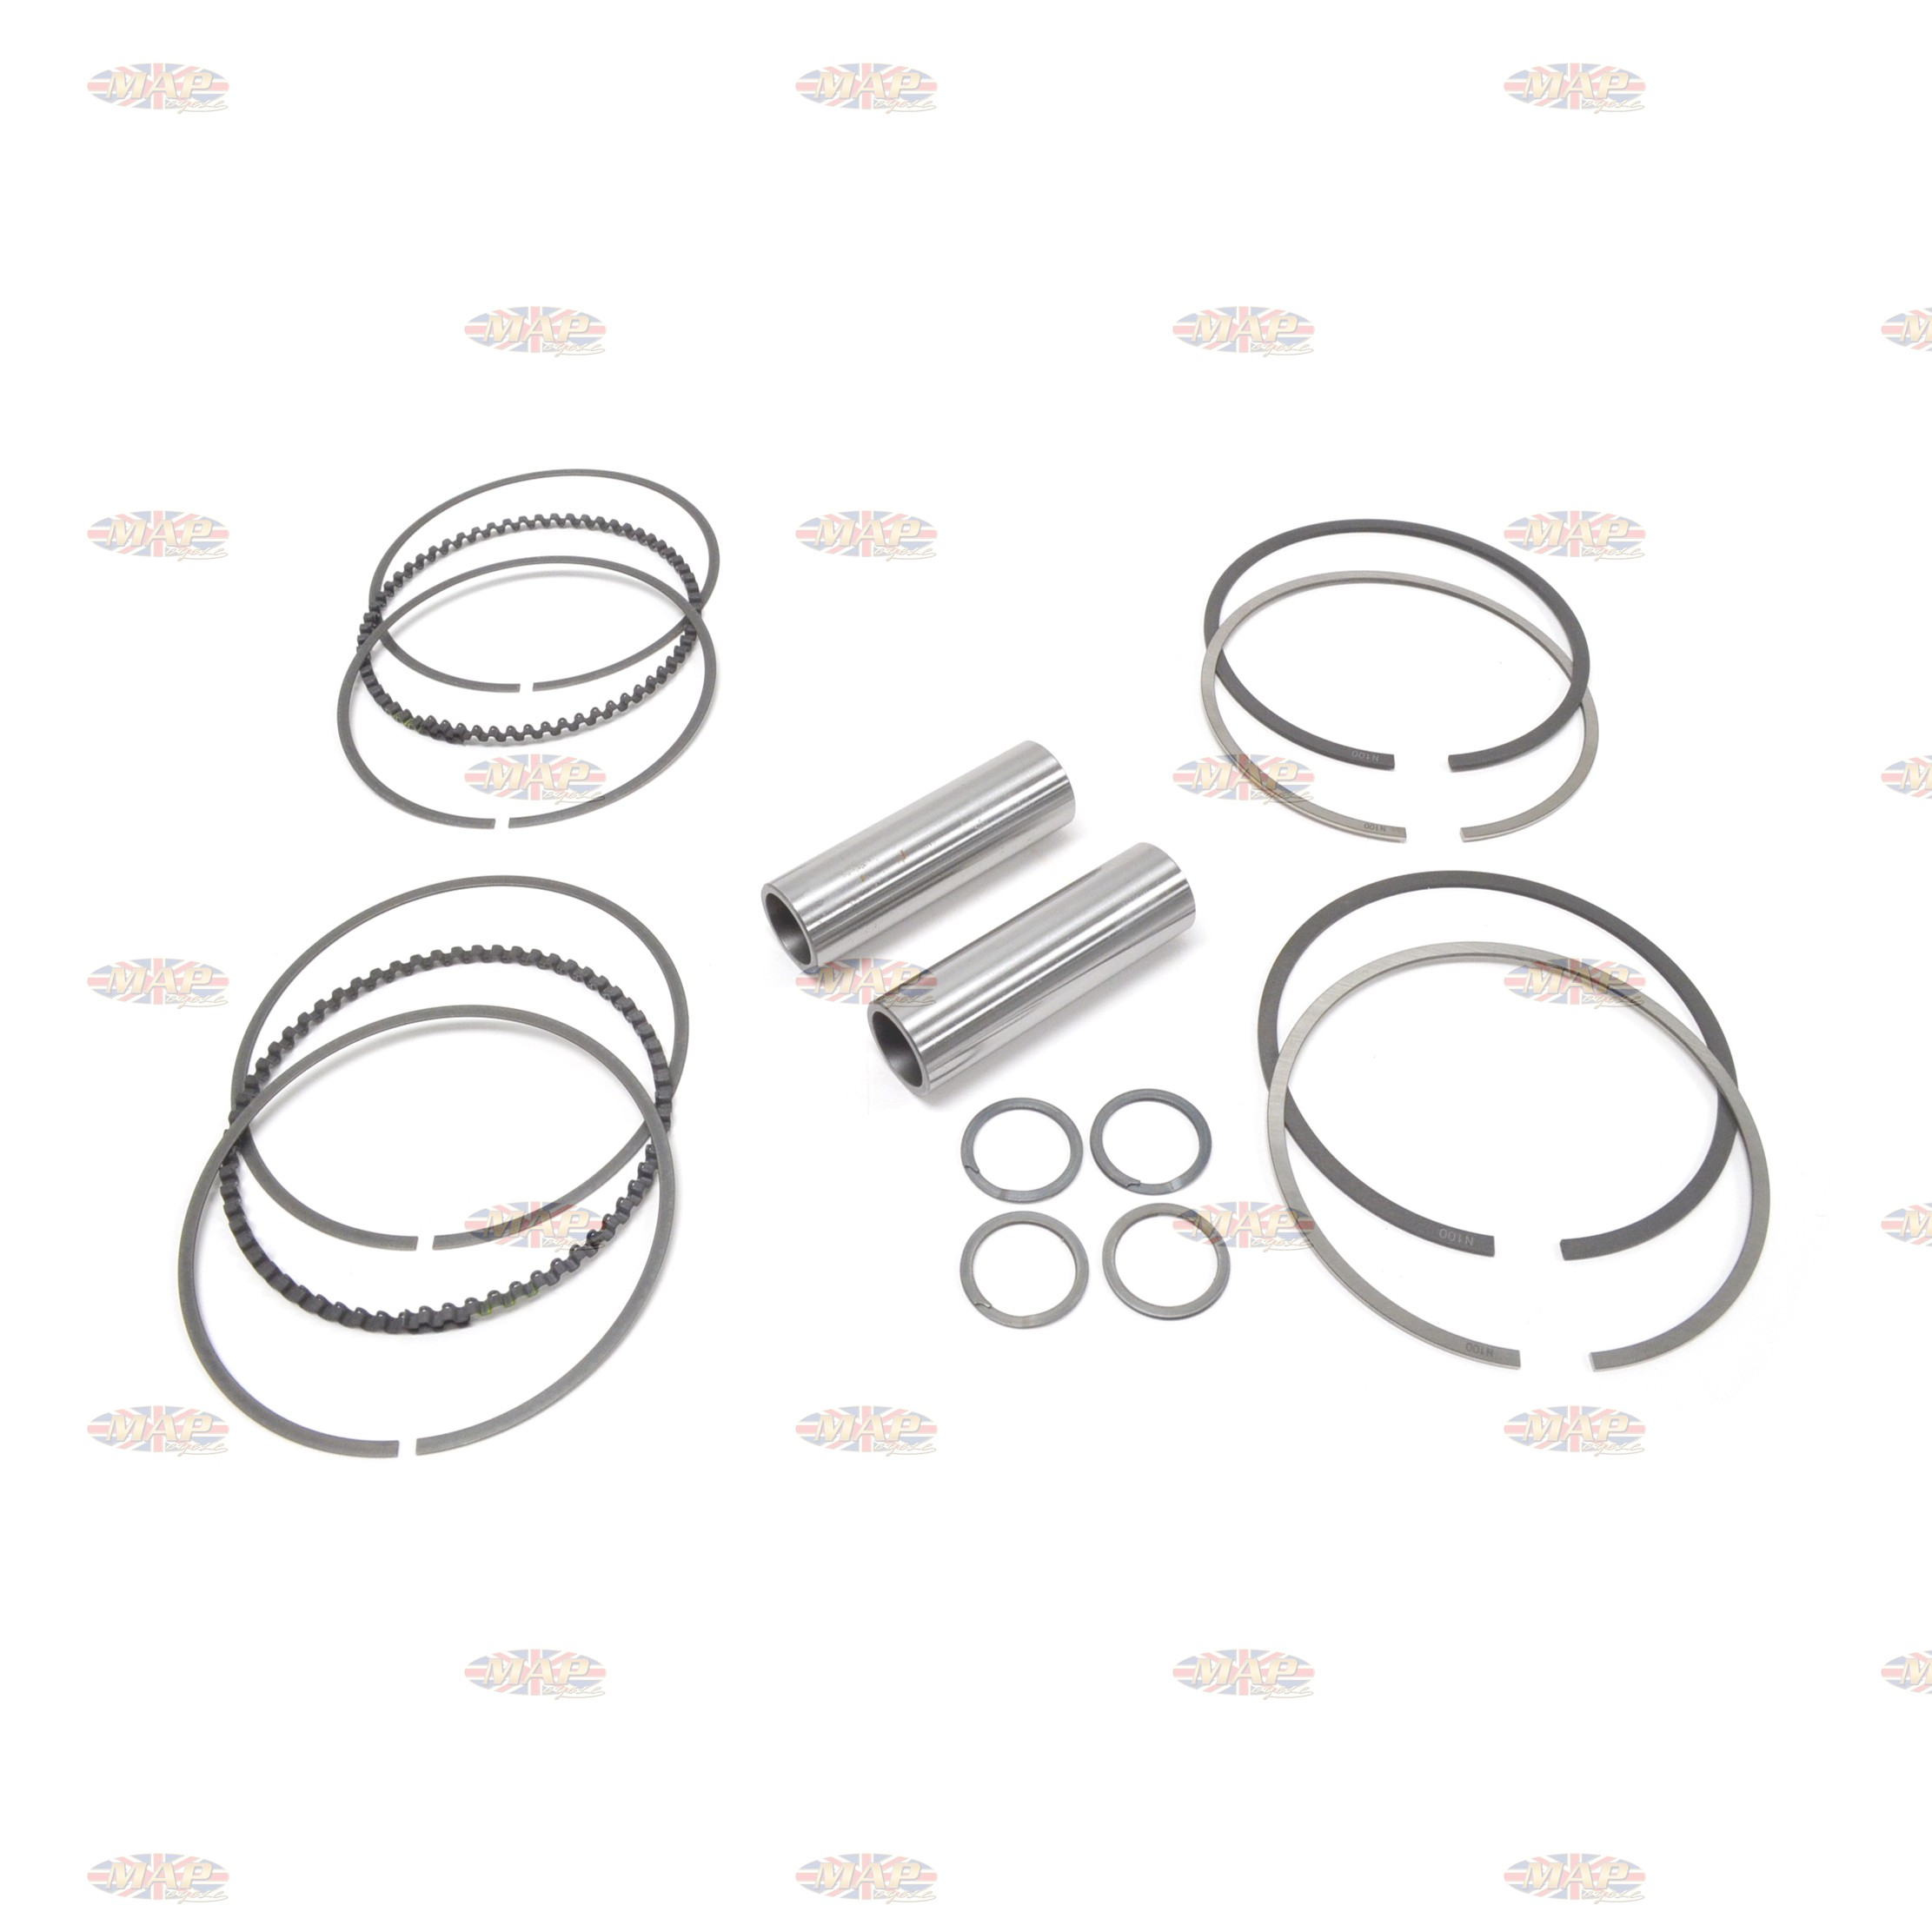 Triumph T140 Billet Piston Set